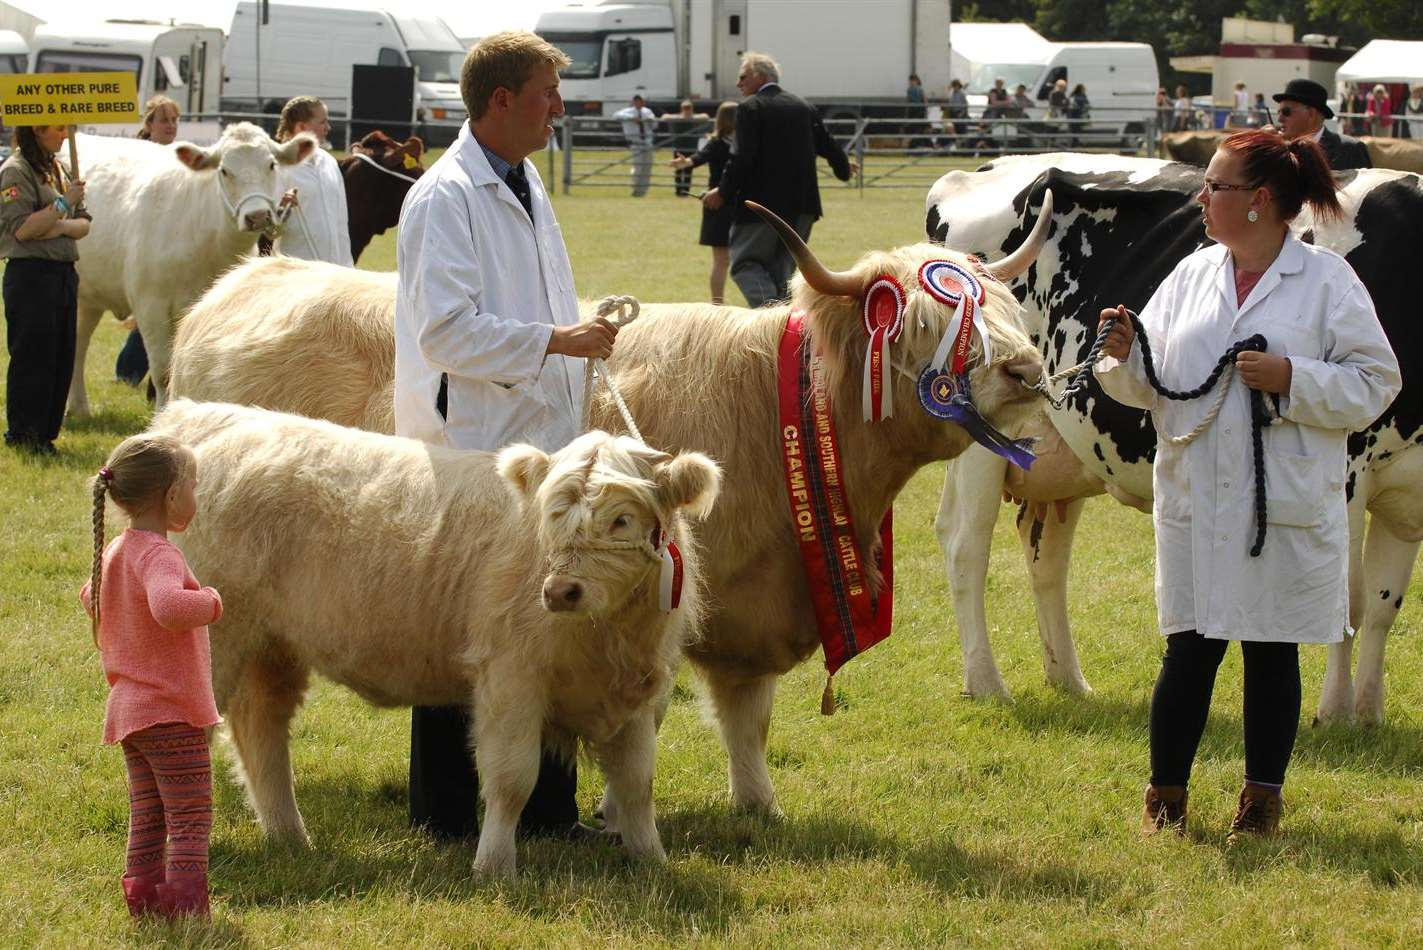 Livestock are one of the features of the Kent County Show